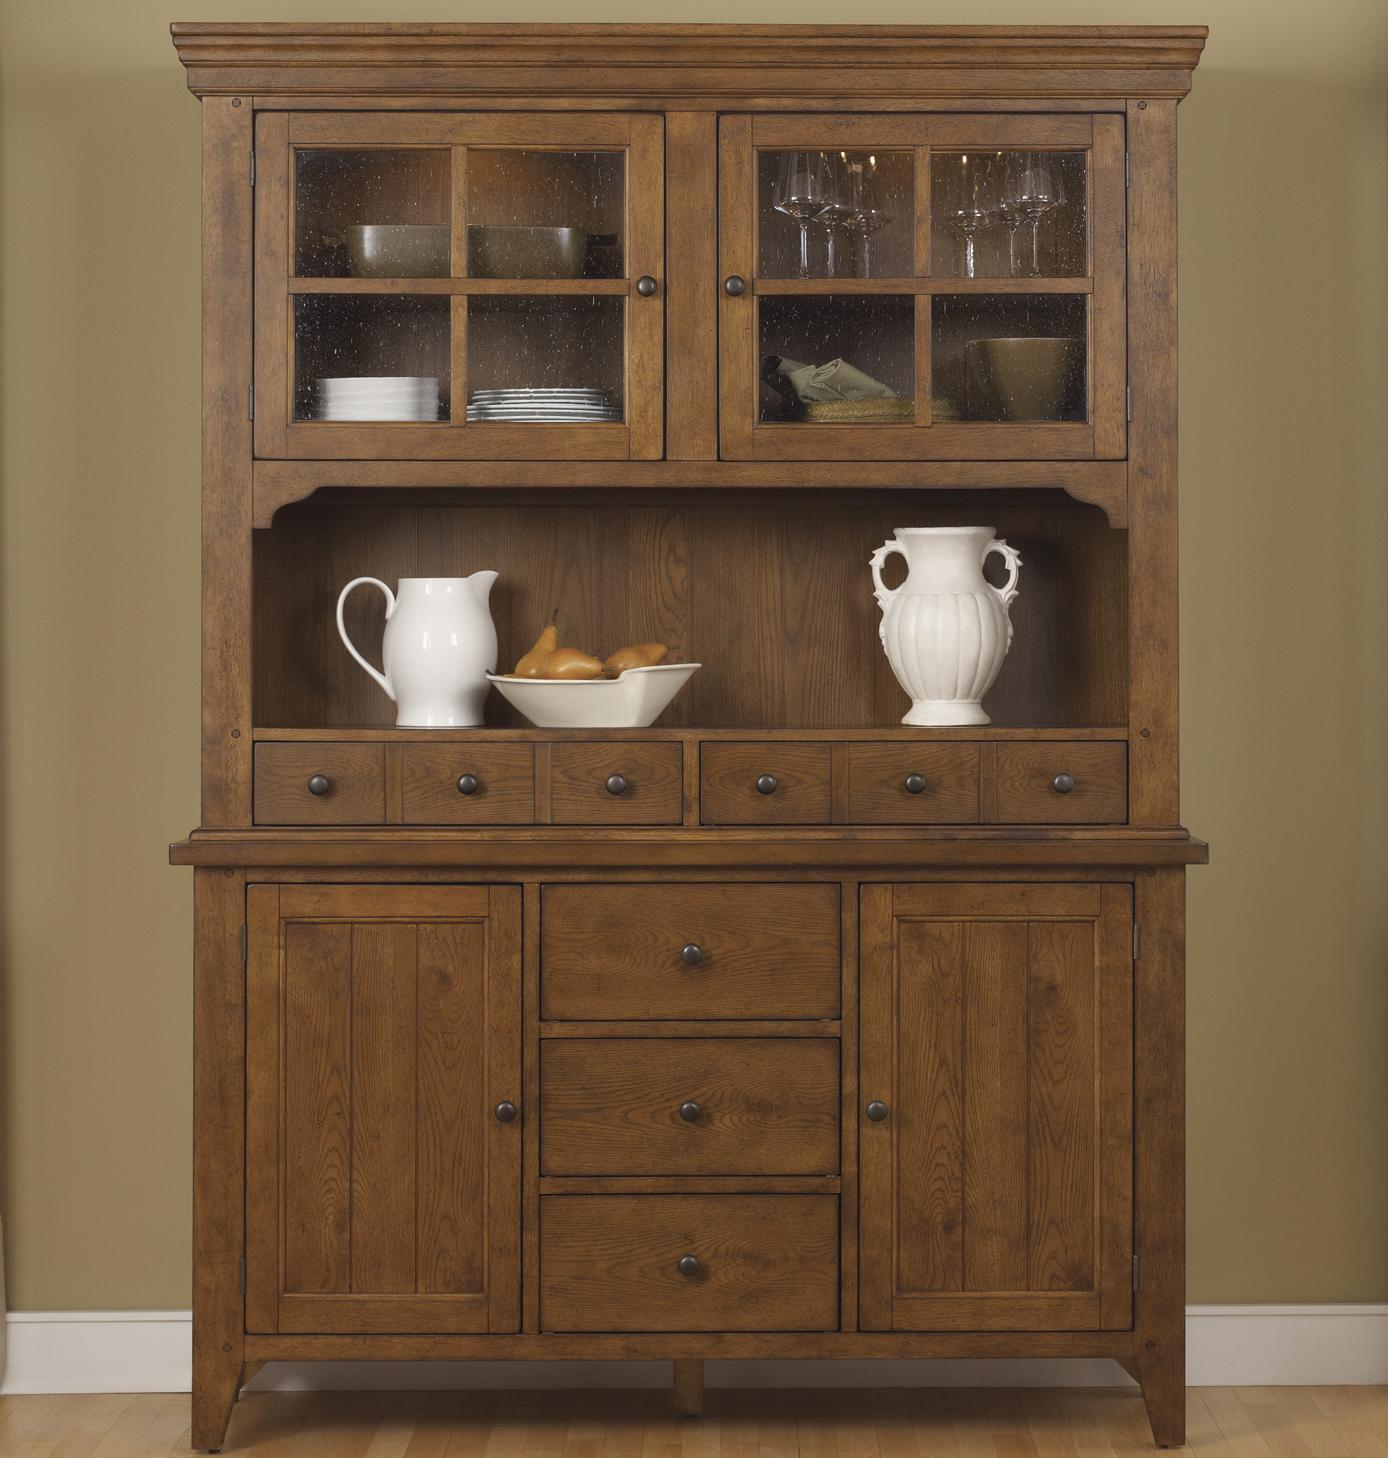 Hearthstone Mission Style Buffet with China Hutch by Liberty Furniture